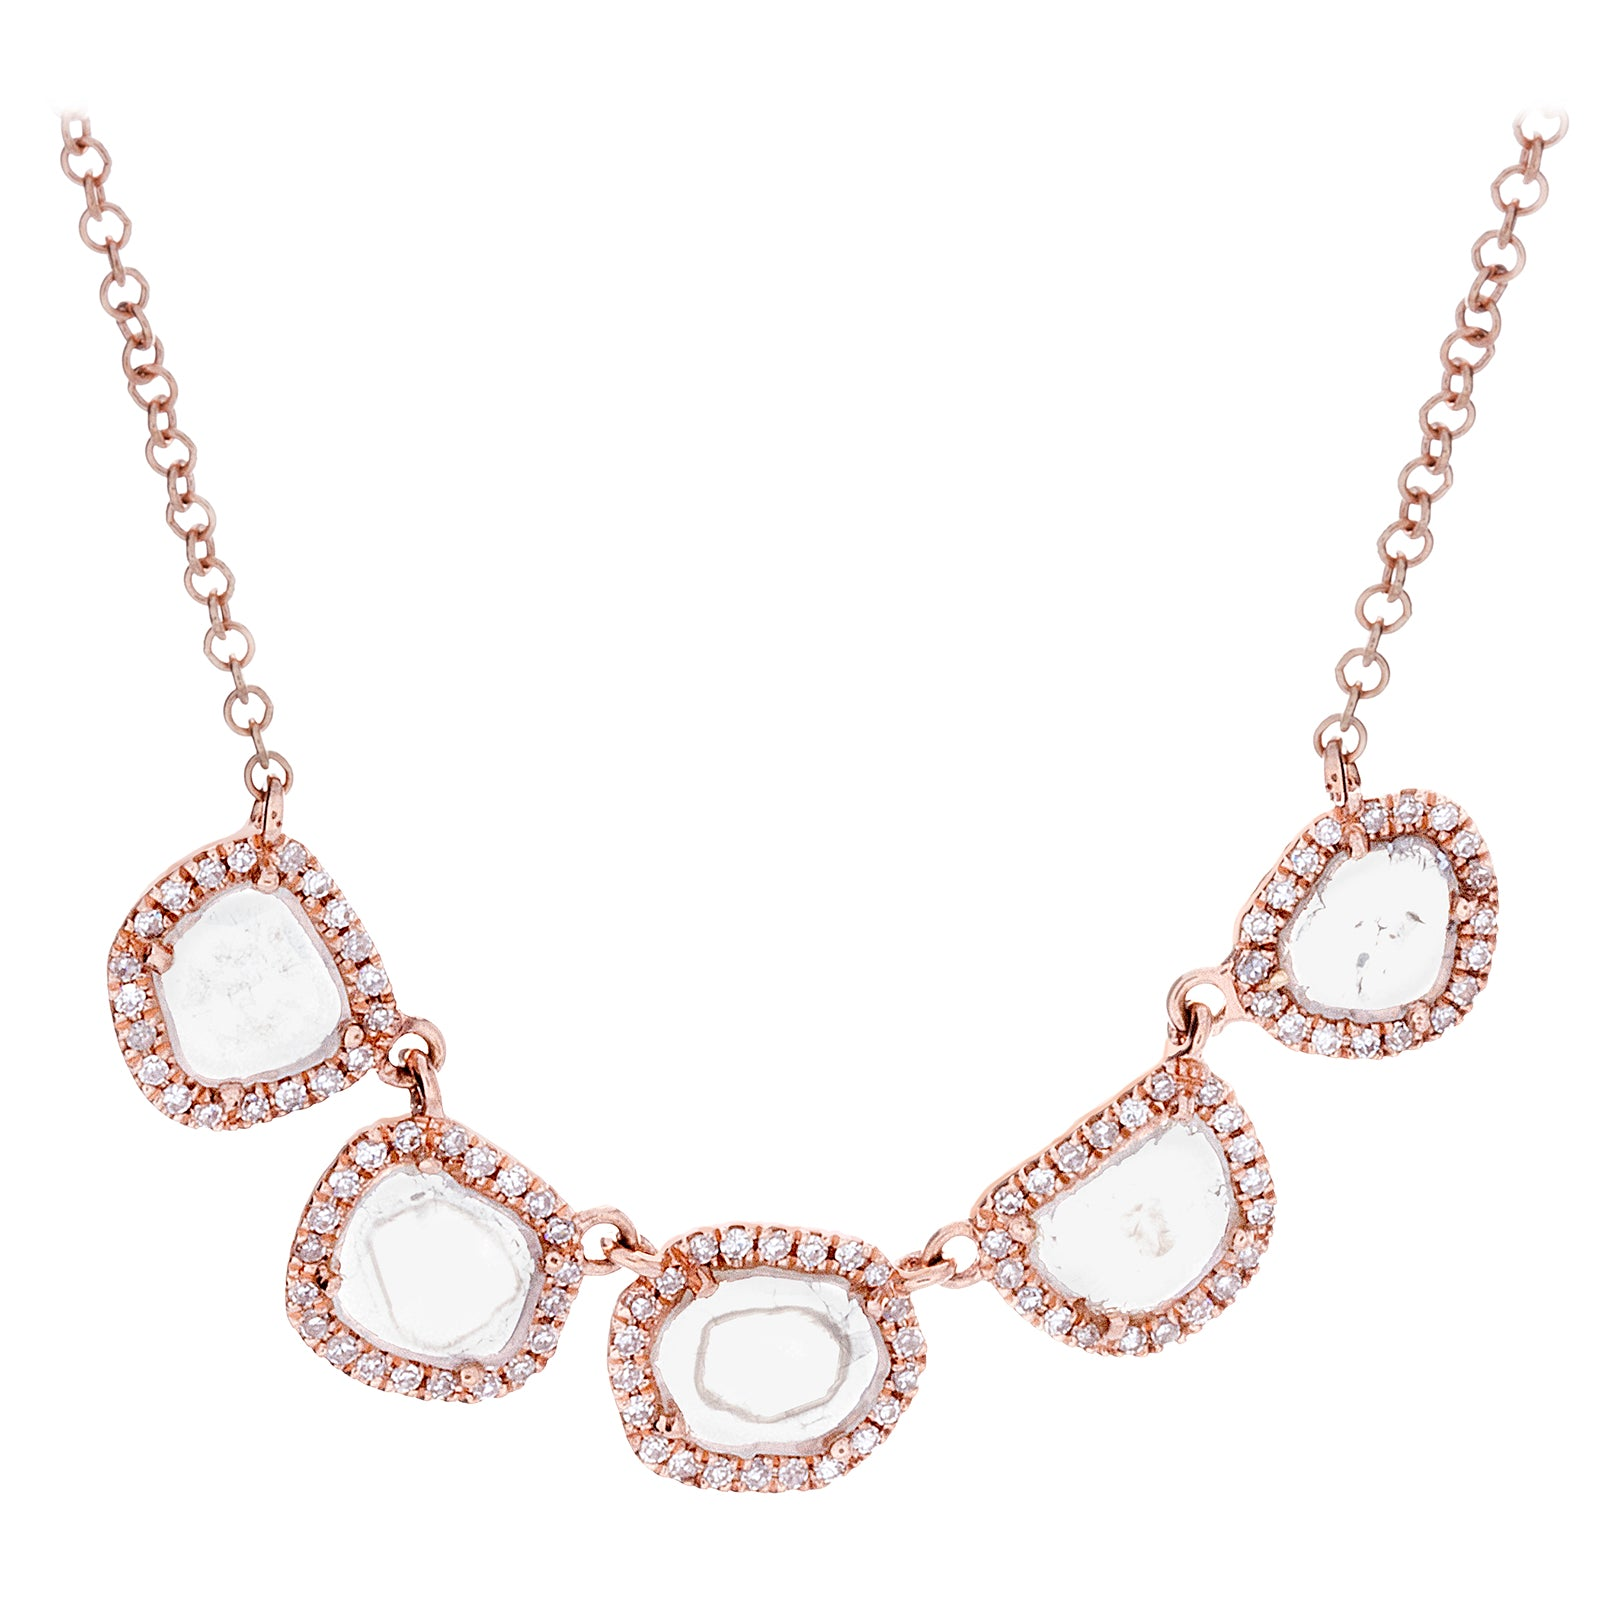 Diamonds & 14K Rose Gold Necklace - SOLD